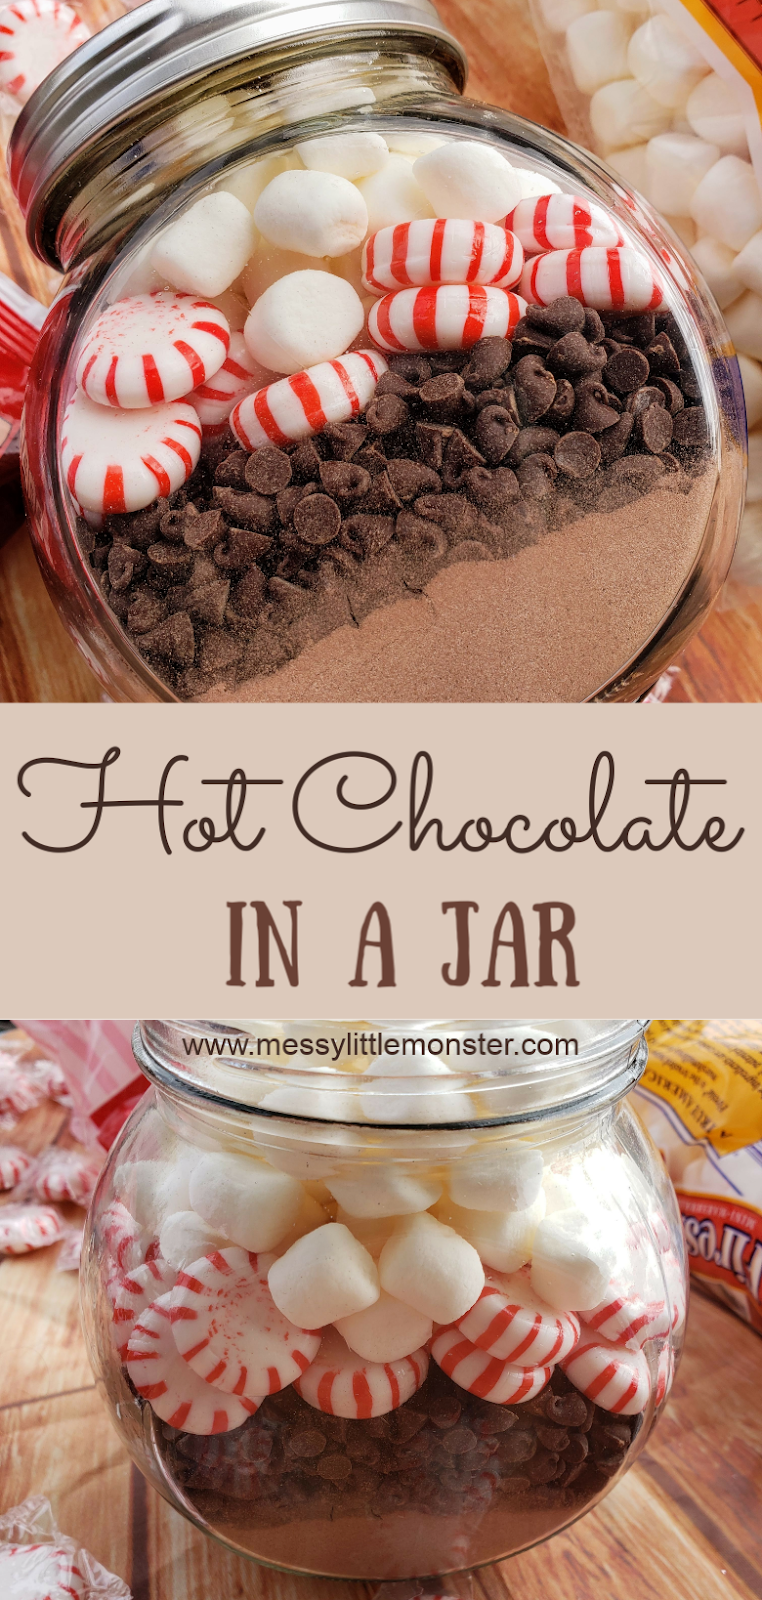 Hot chocolate in a jar. This hot chocolate mix in a jar is an easy gift kids can make. Homemade is always best and gifts in a jar like this are sure to go down well!